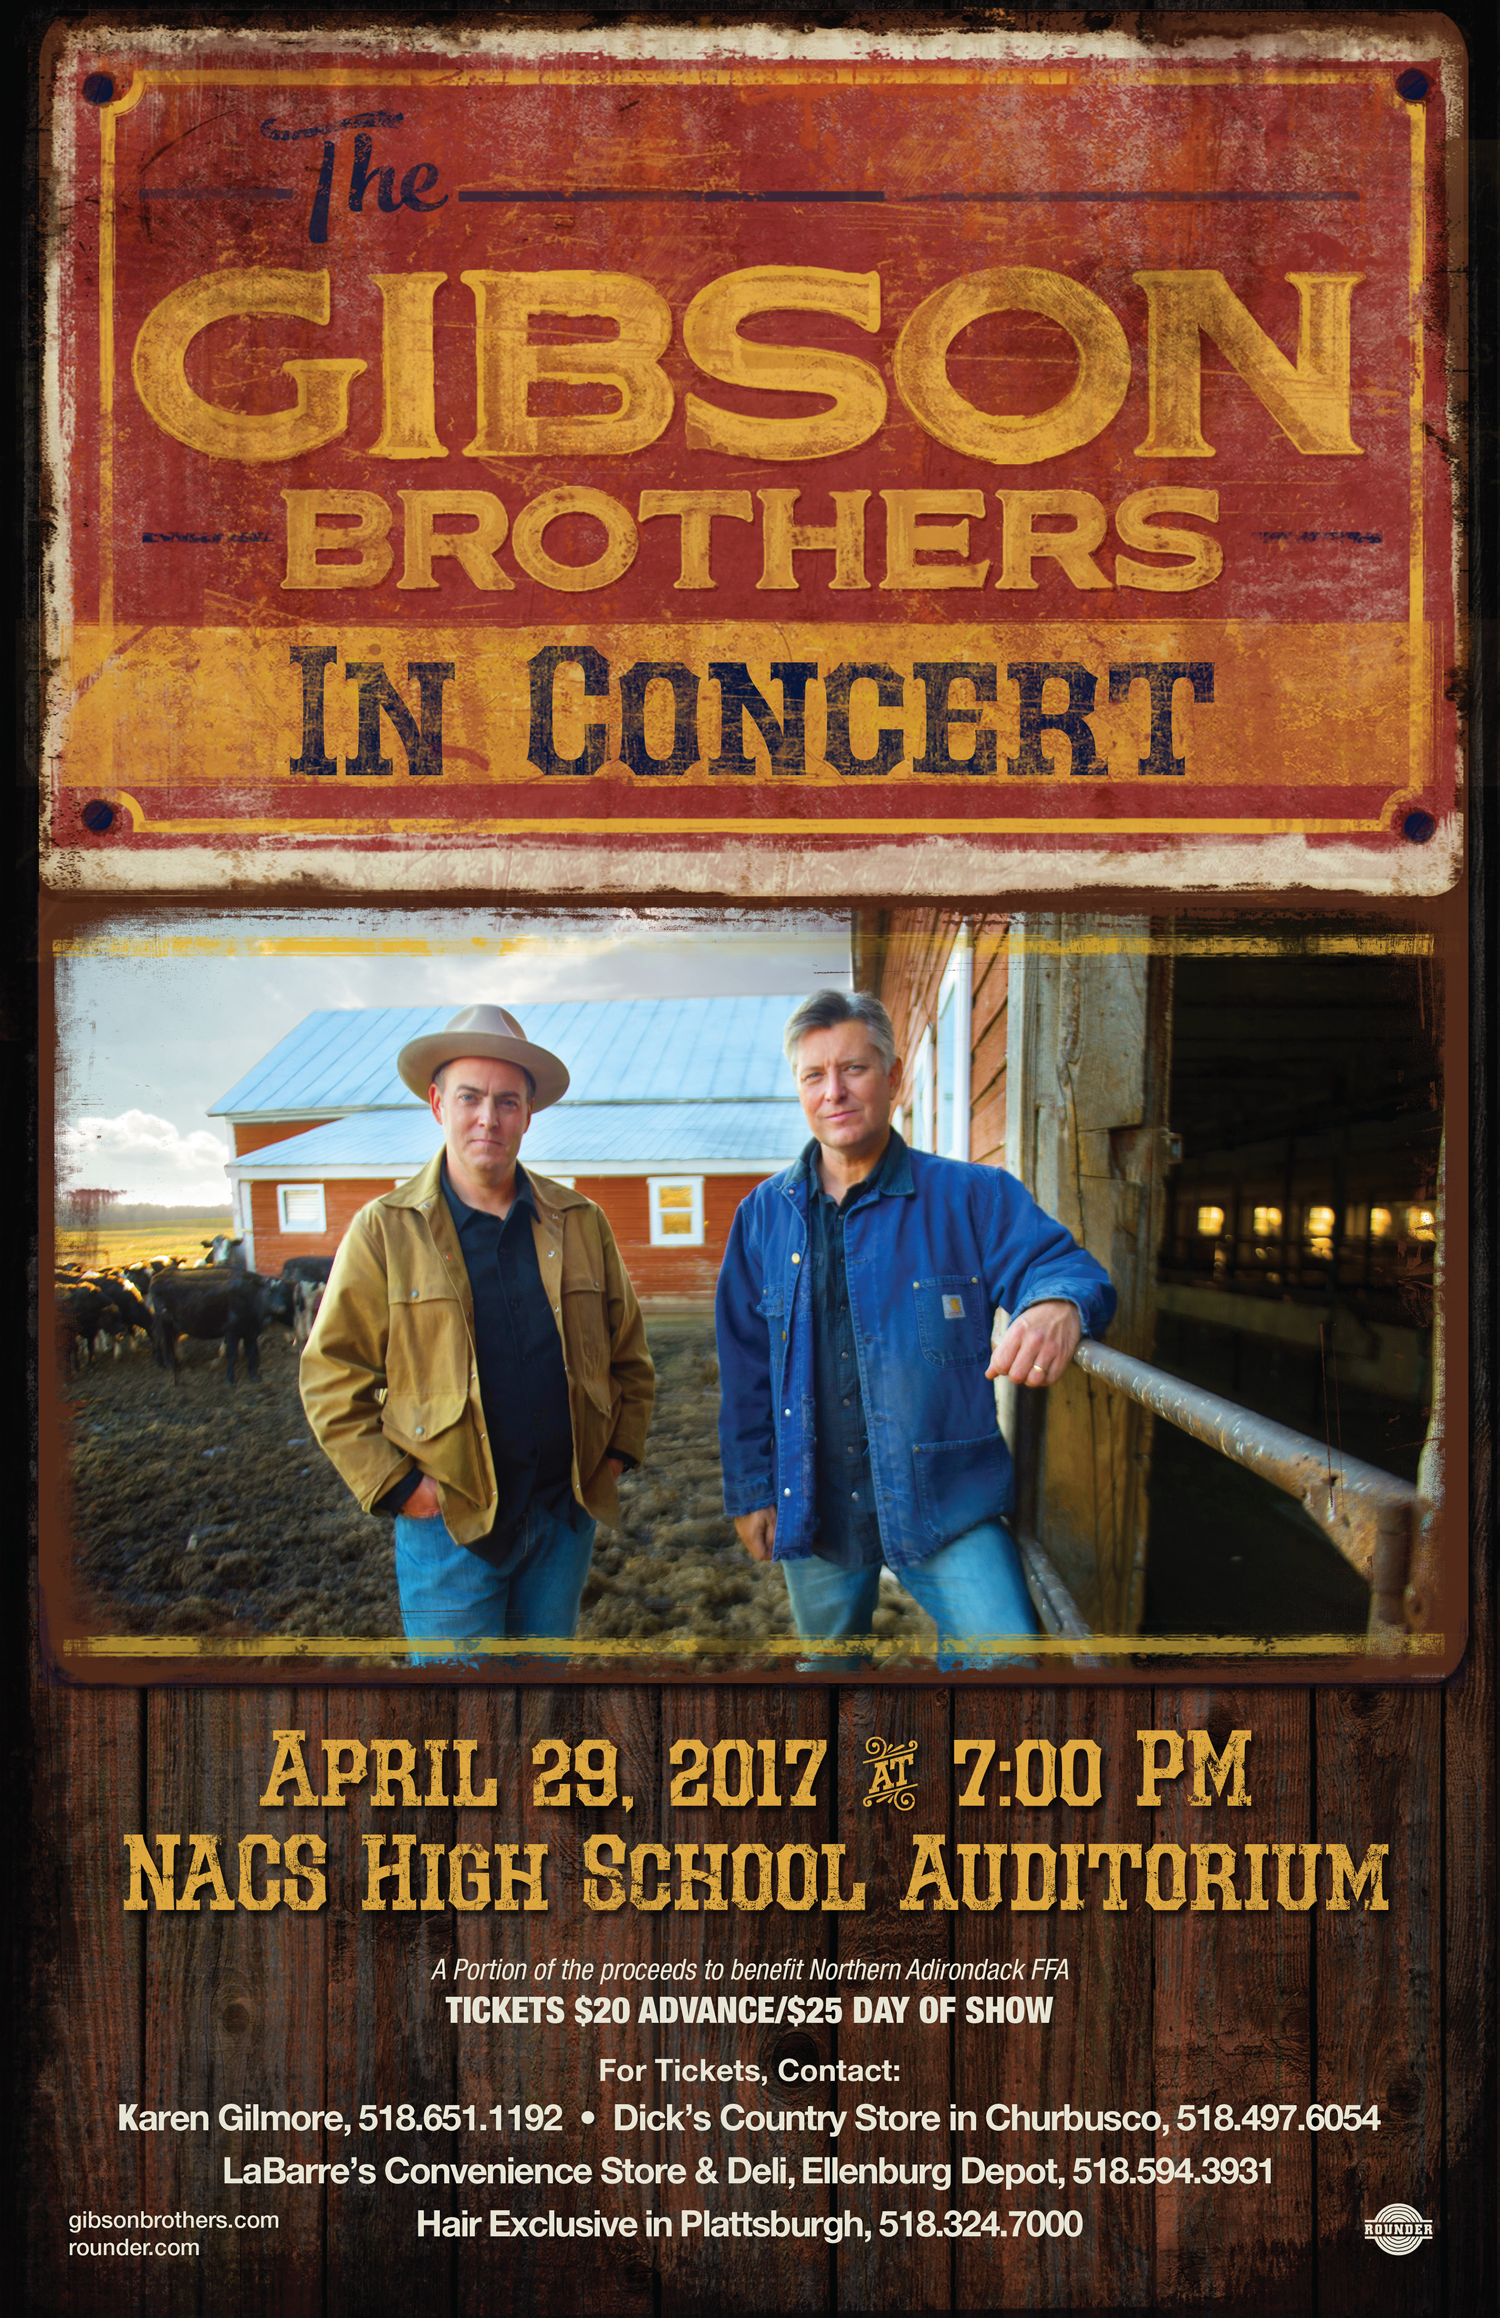 gibson_brothers_poster_farm11x17.png